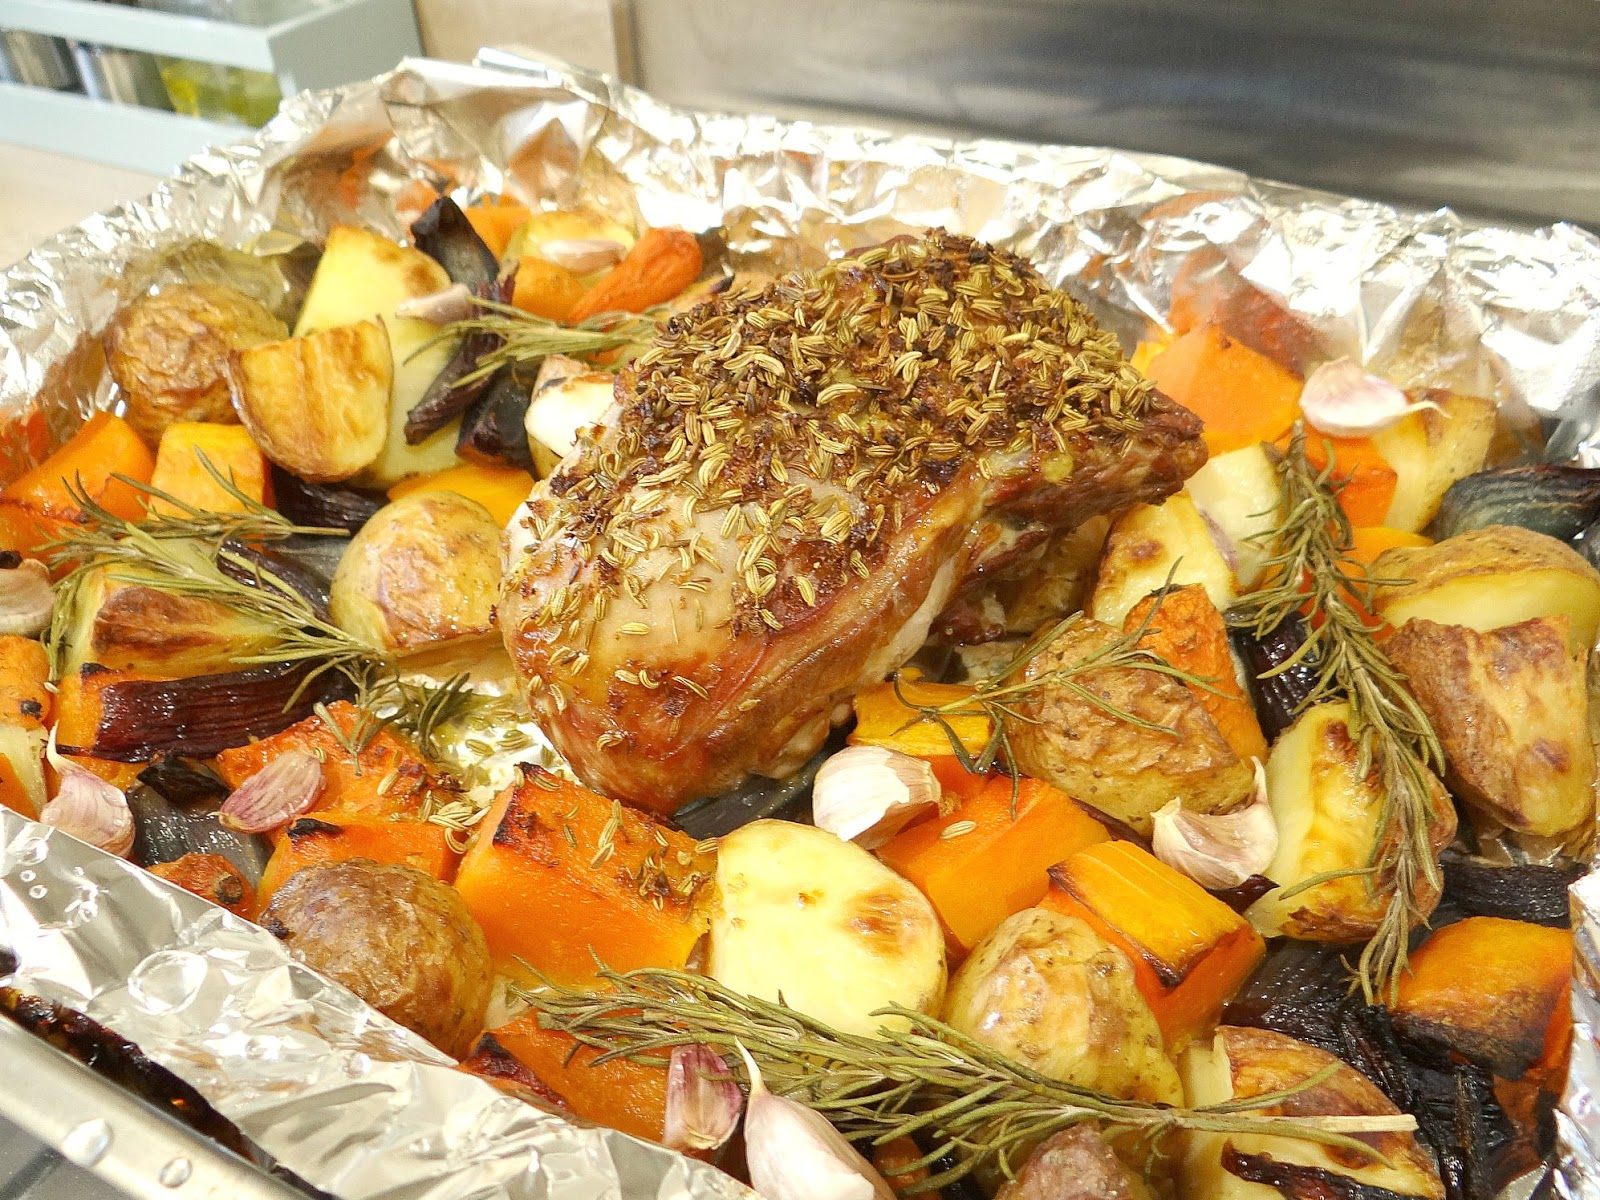 Easter Roast, Roast Leg of Lamb, New Zealand Lamb